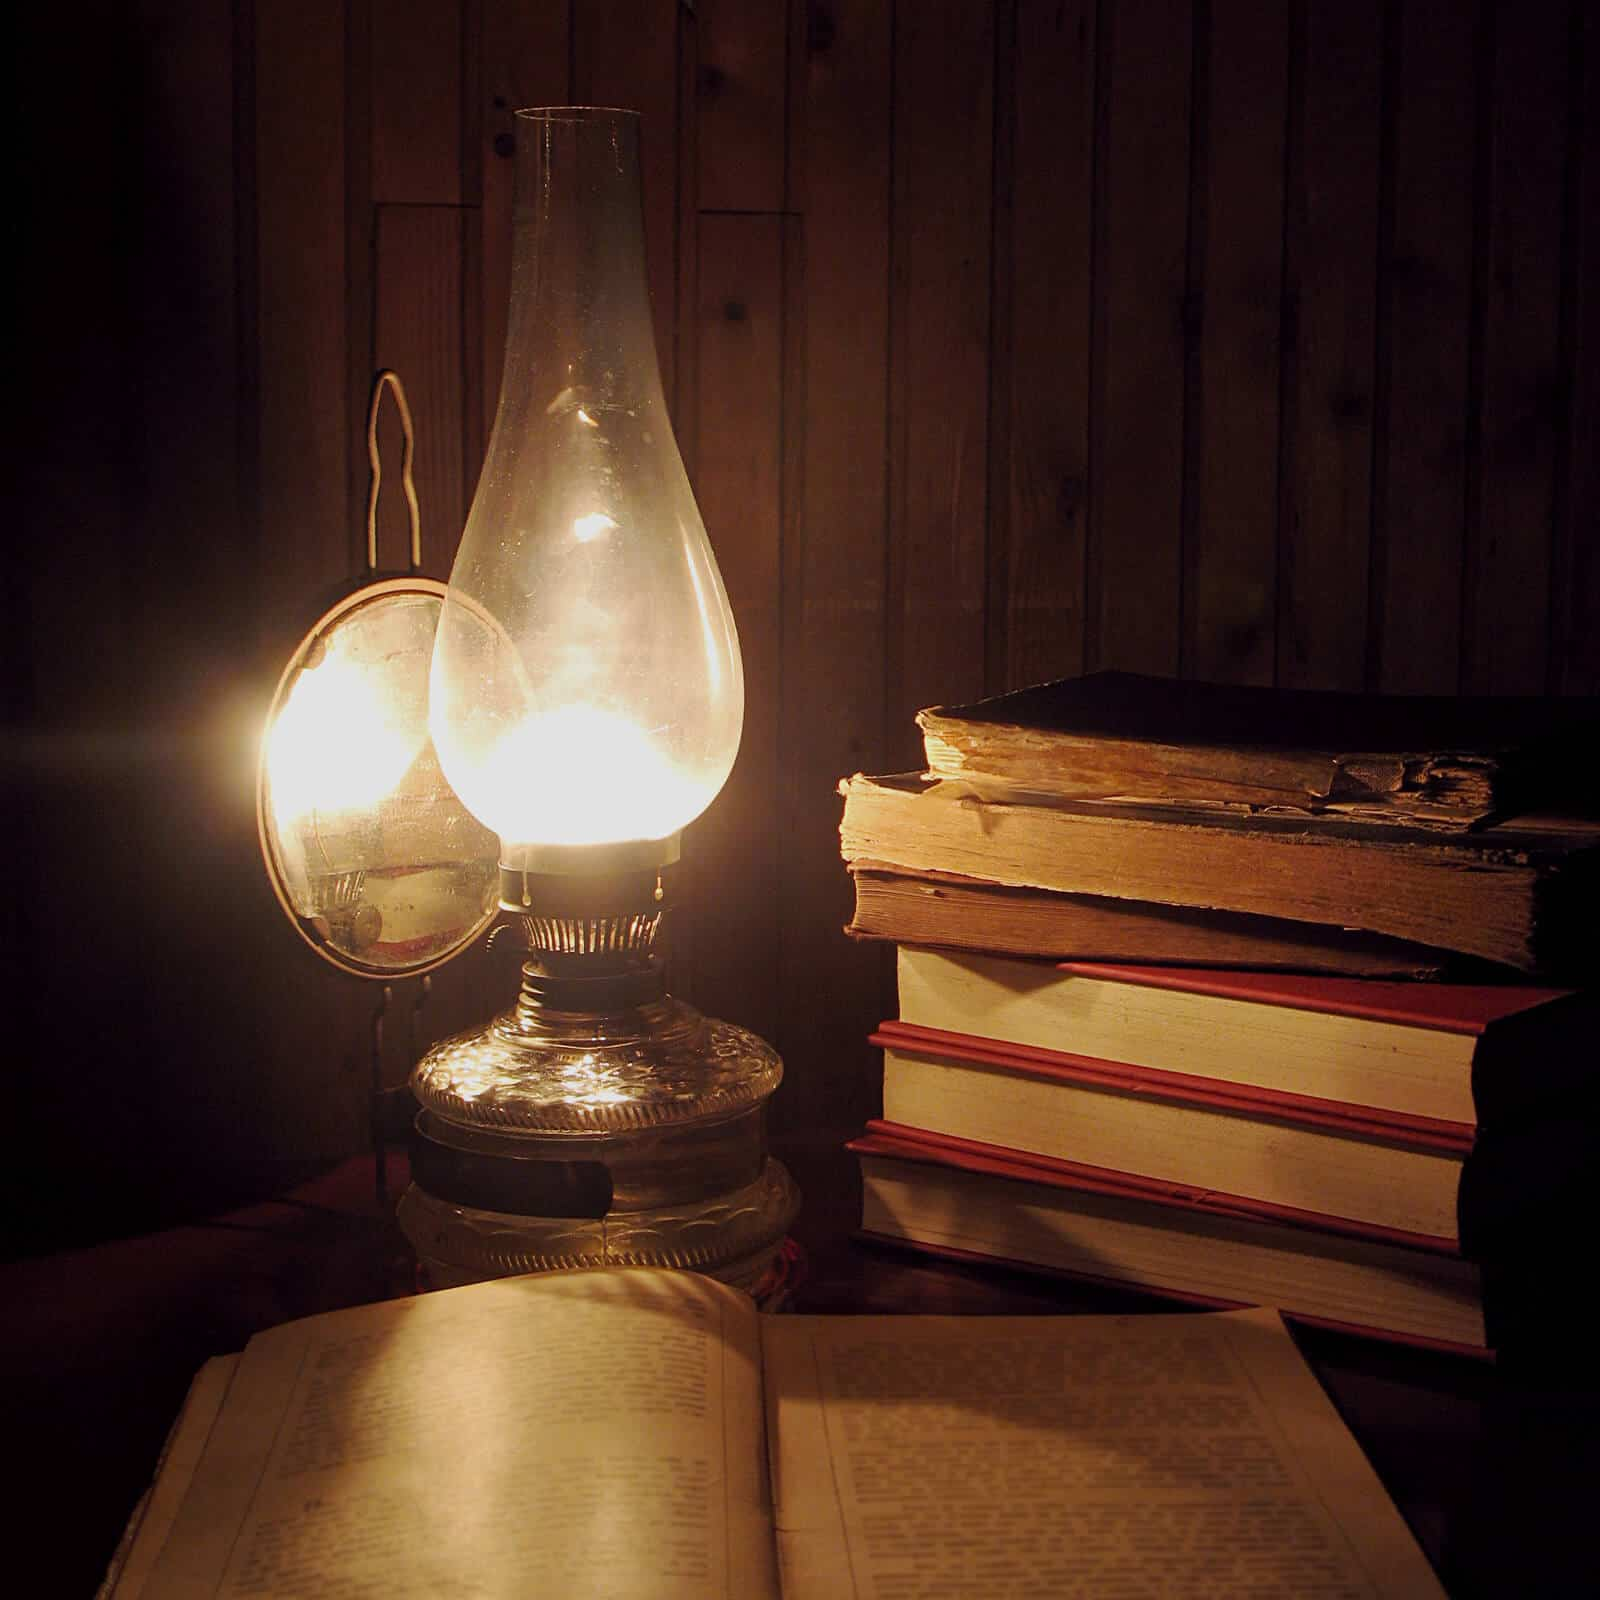 Books and Lantern